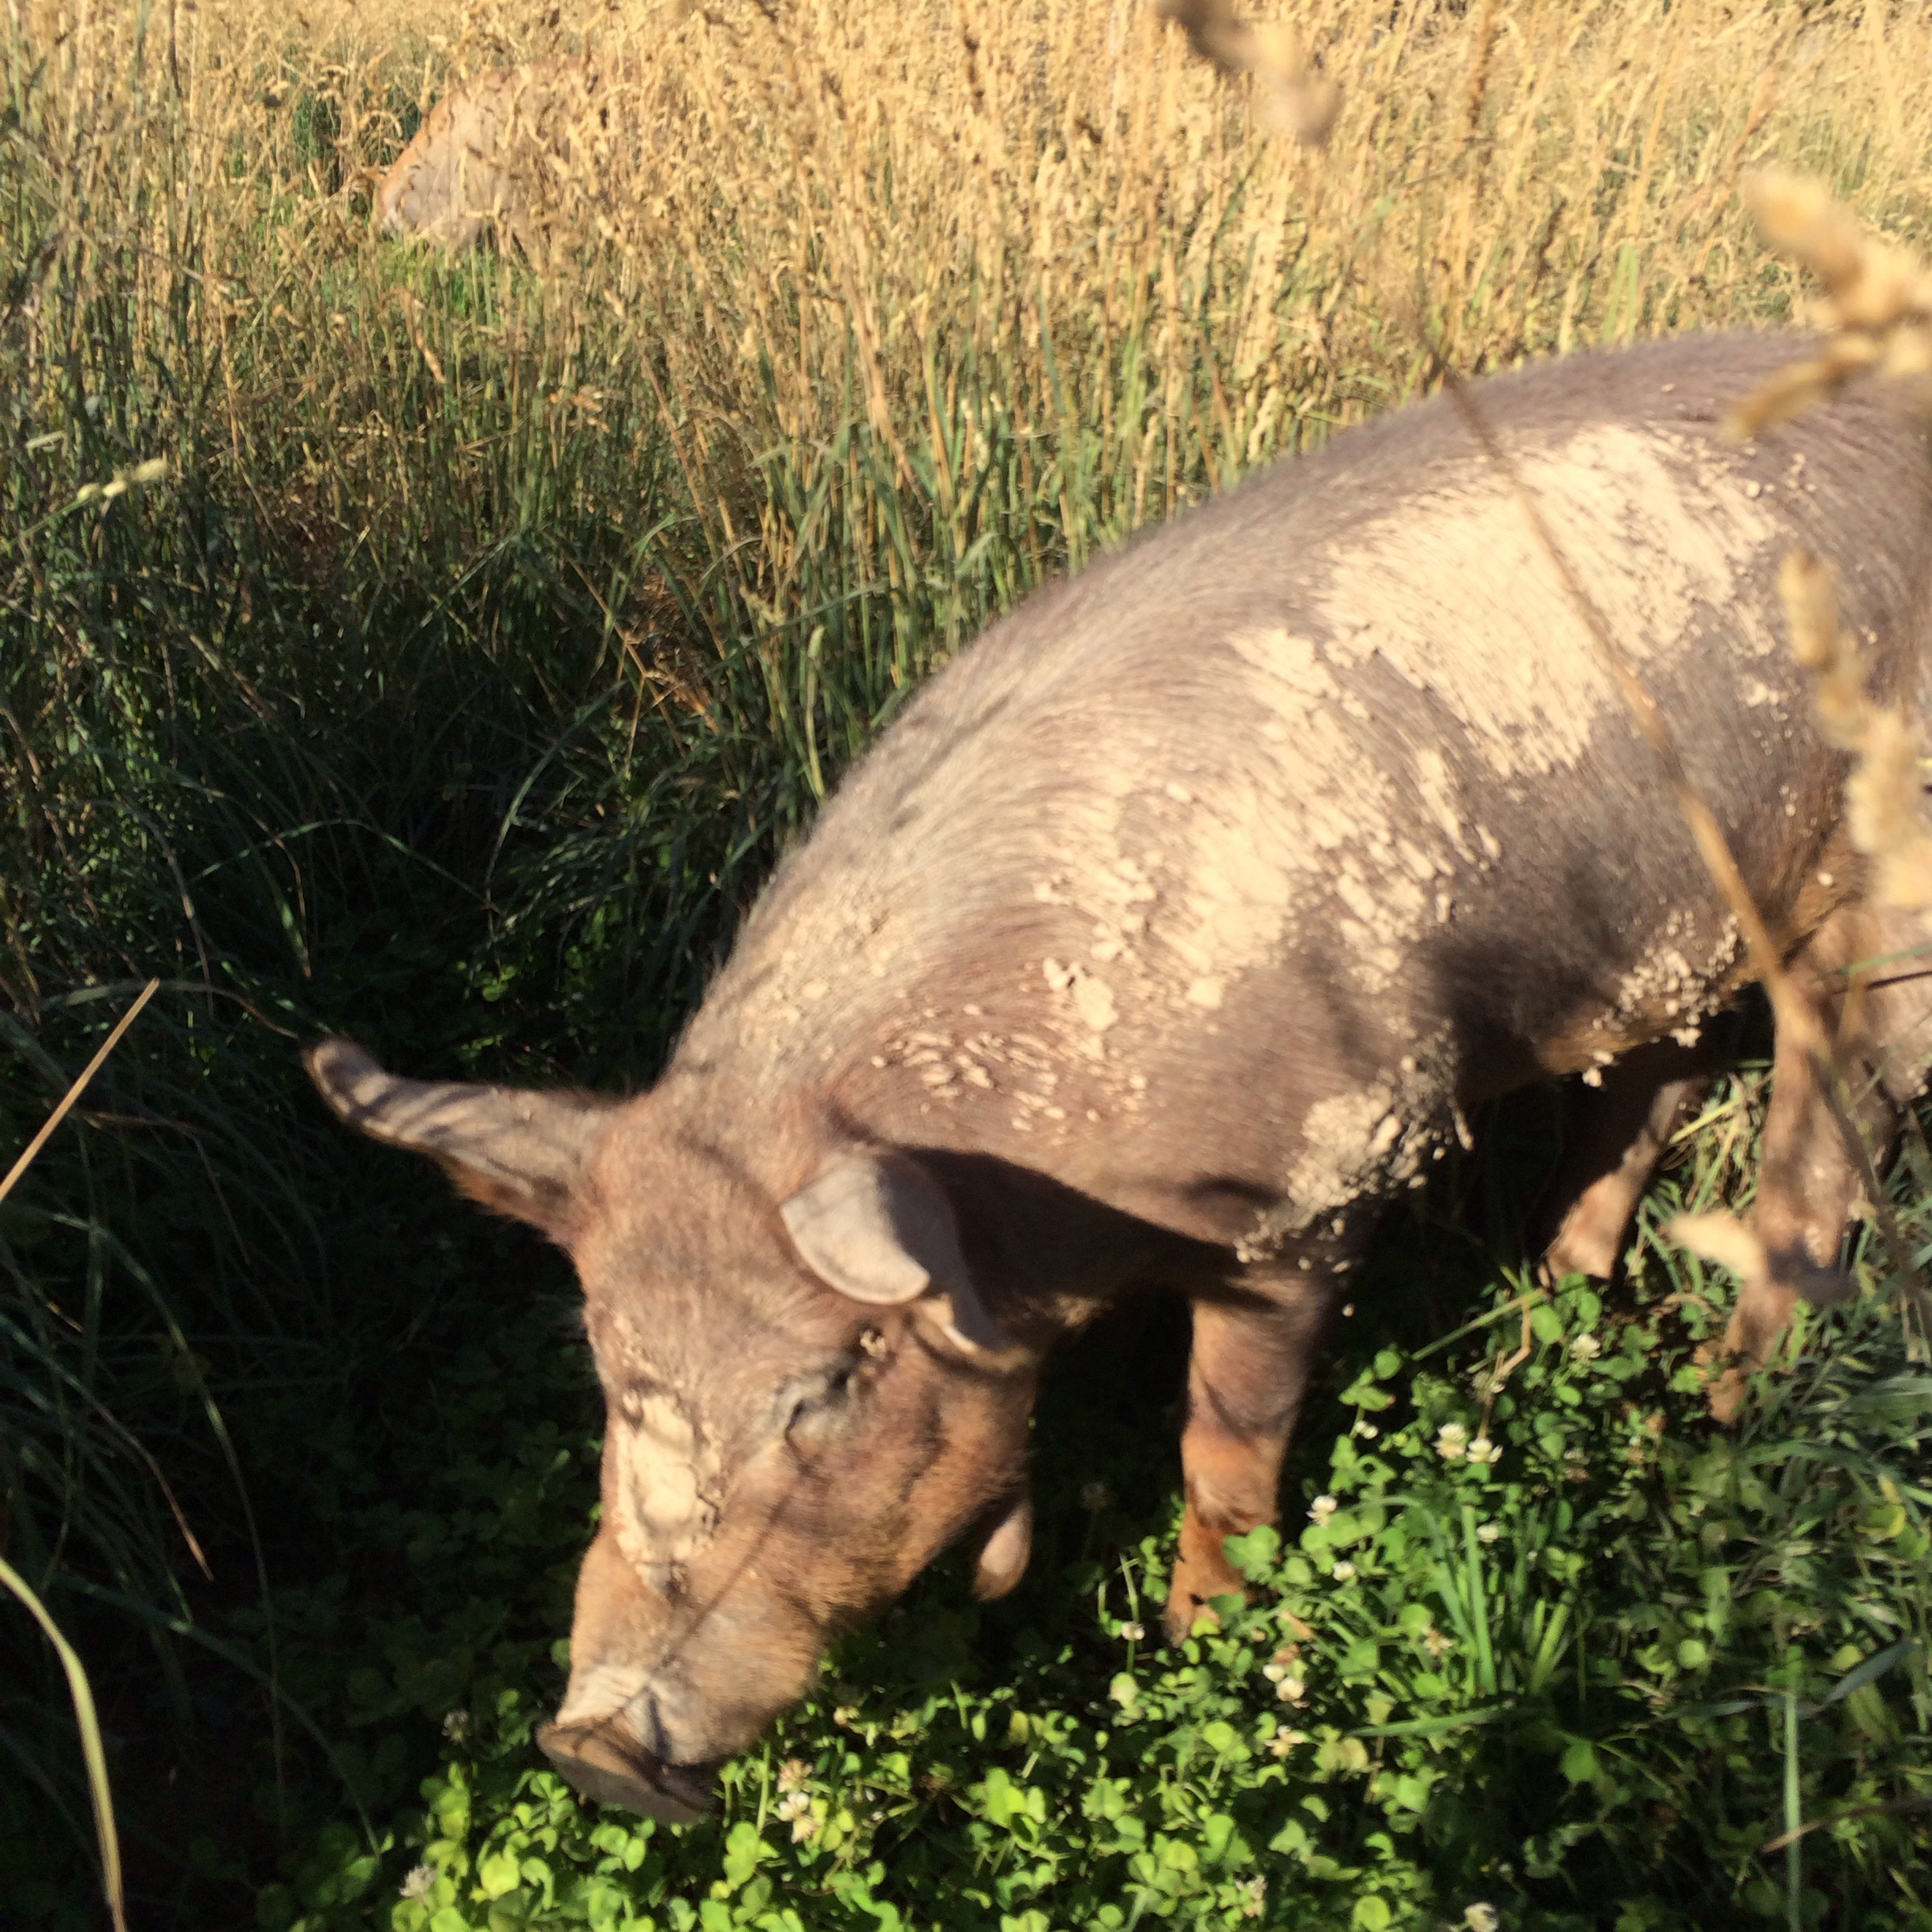 Rocco and Mona our sow and boar are enjoying the clover